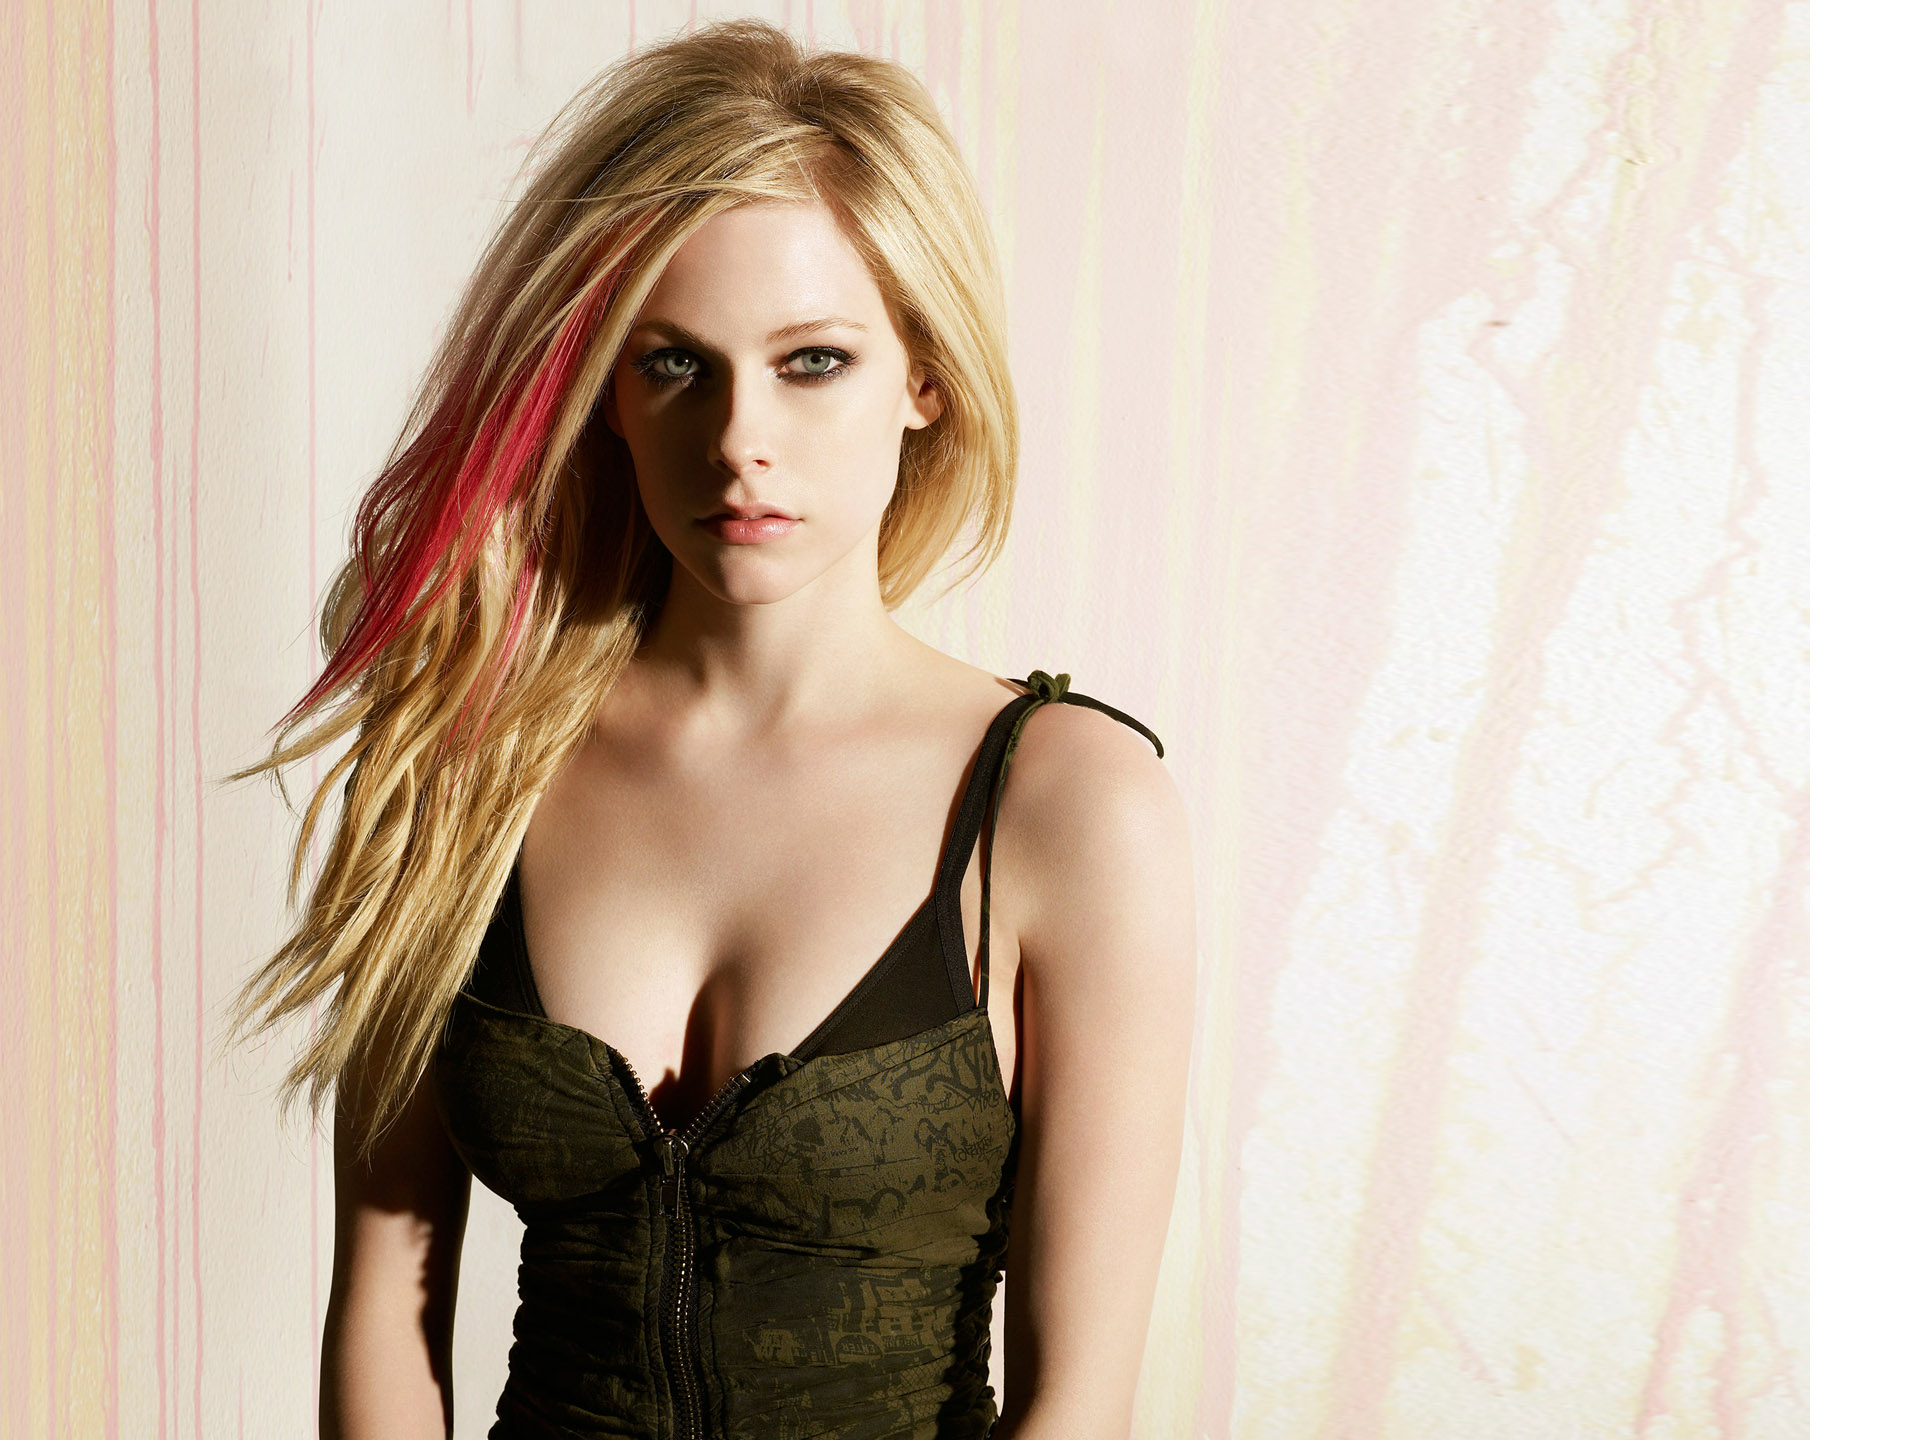 Avril Lavigne 511 211.16 Kb